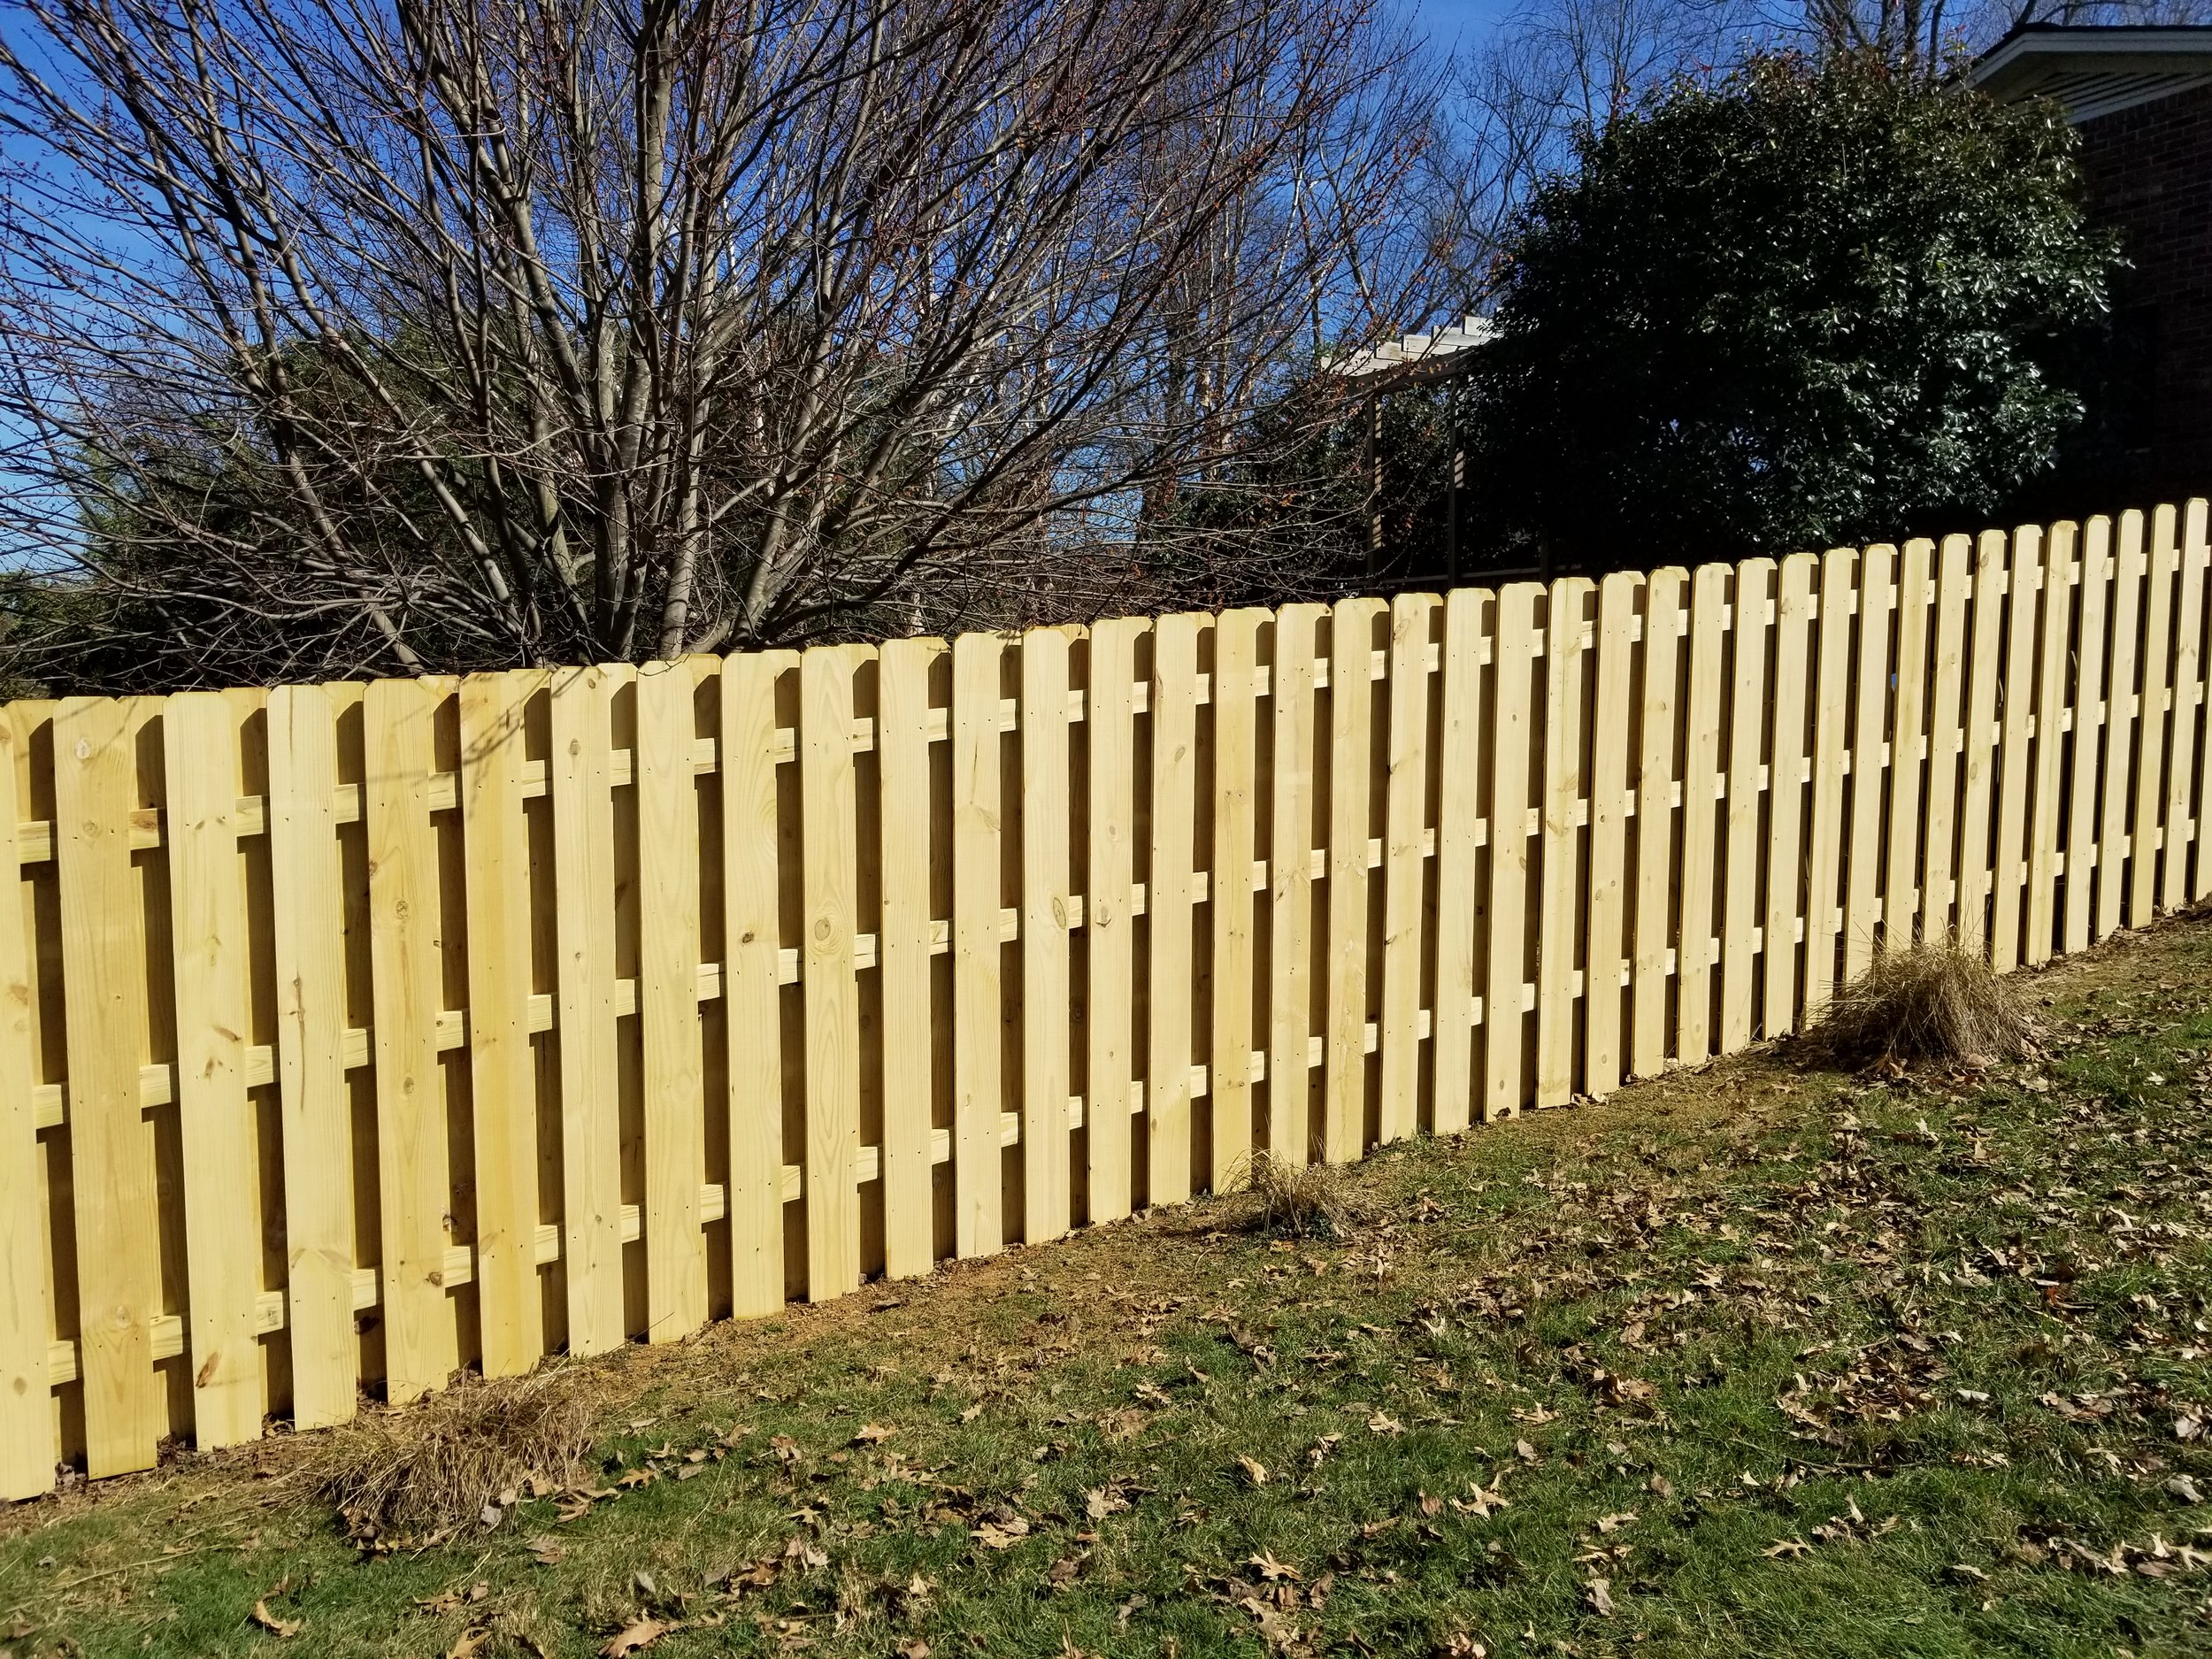 New Shadowbox Wood Fence 160 Feet (Johnson City, Tn)